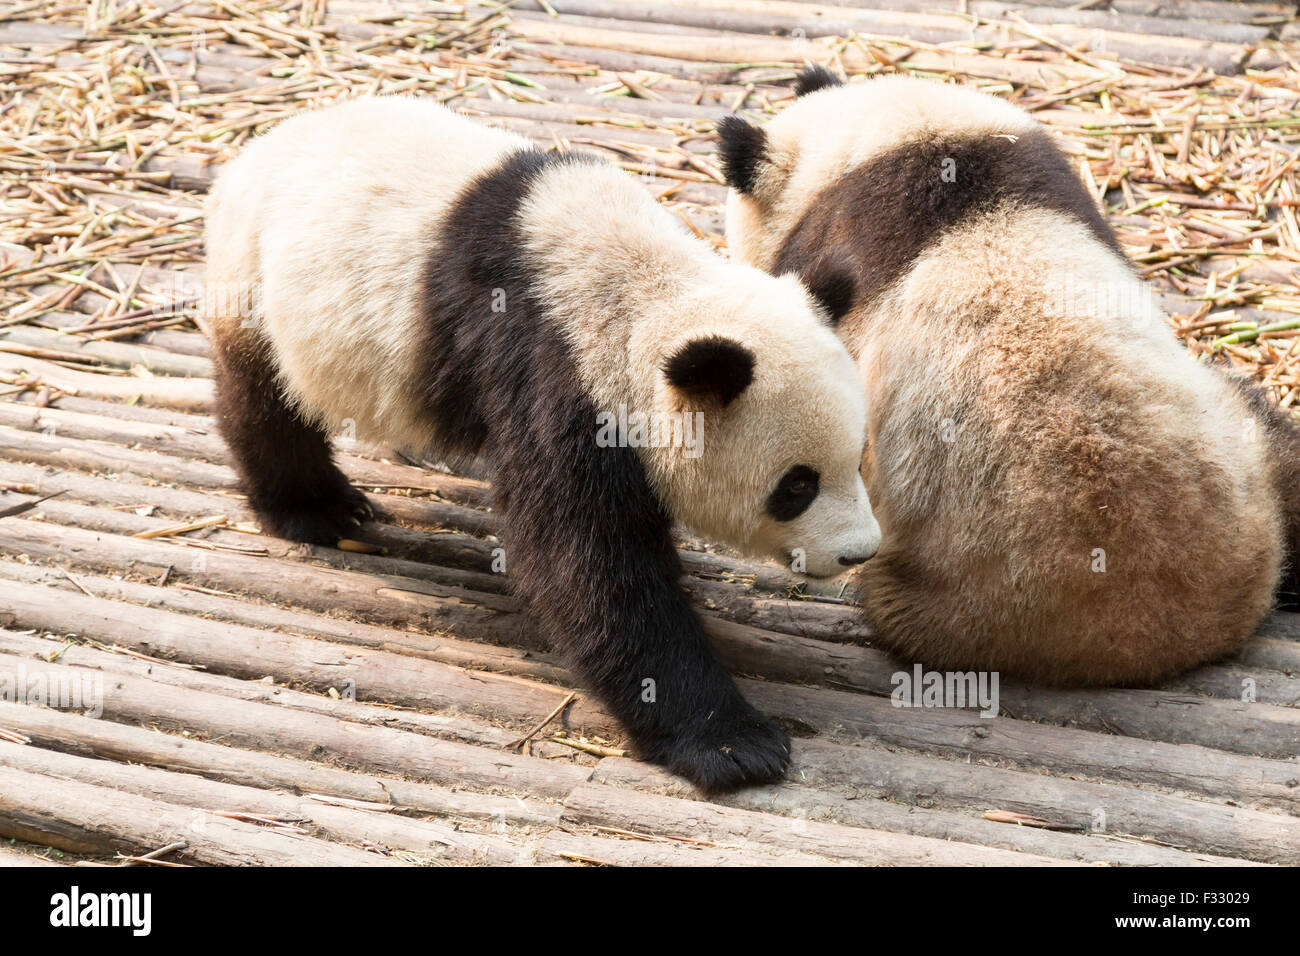 Giant Panda Bear - Stock Image